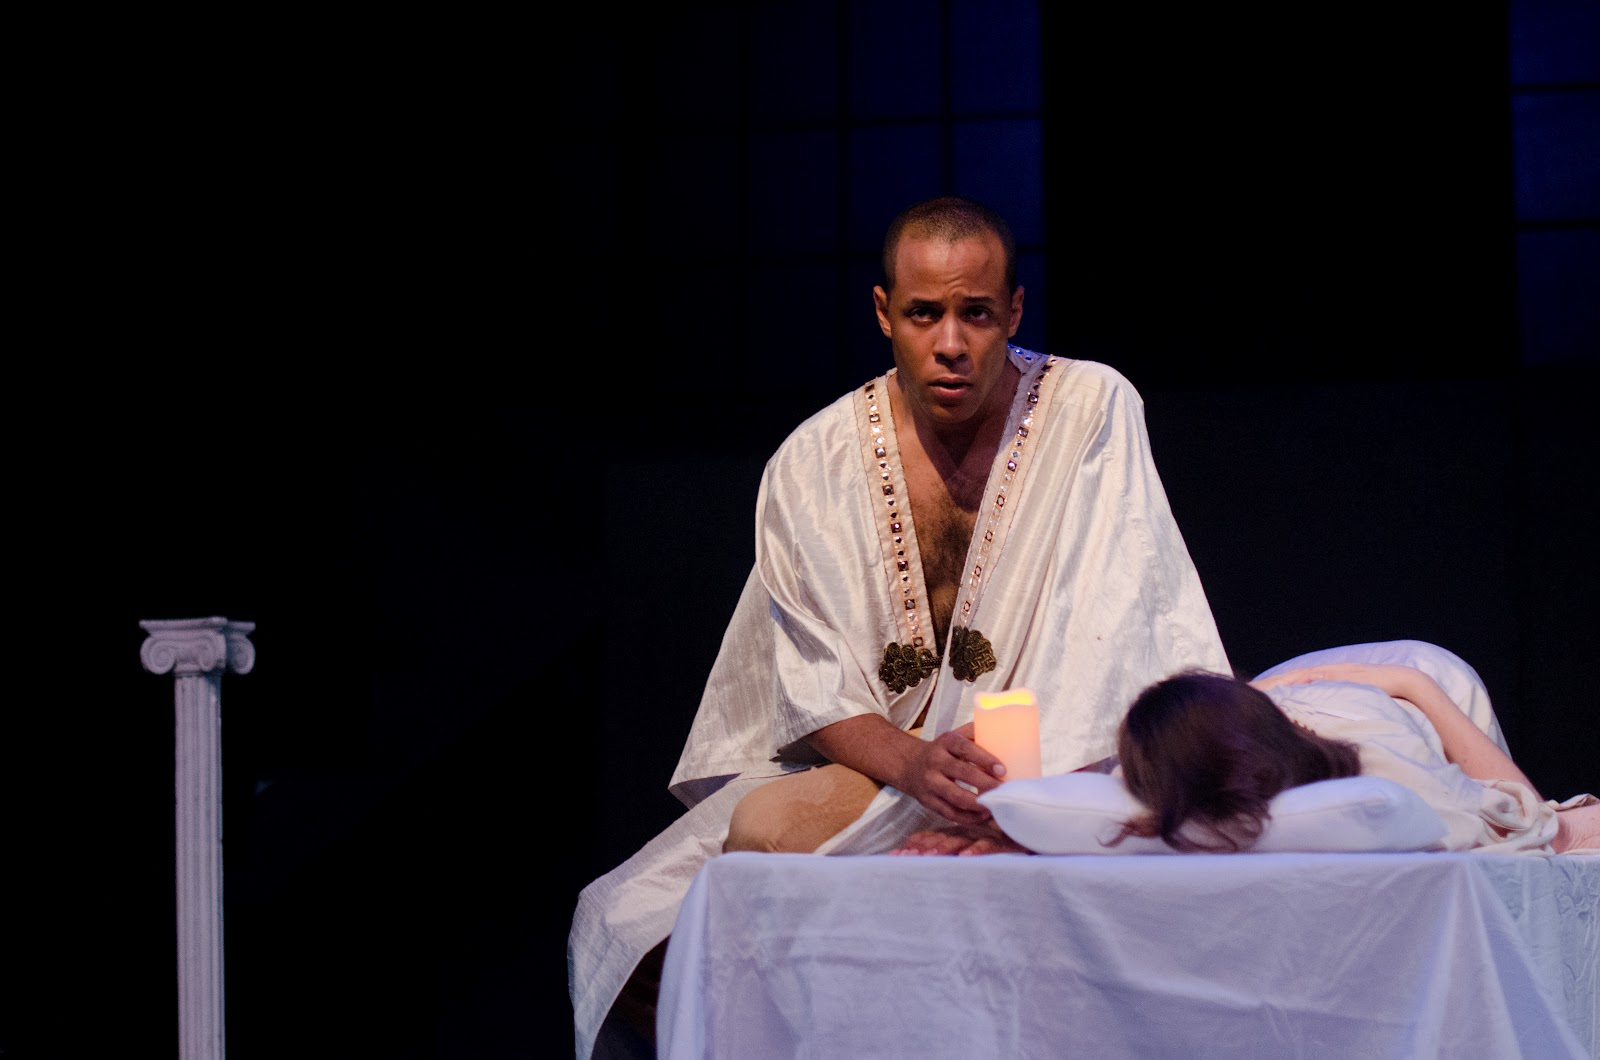 othello is a play about the The bond between othello and desdemona falls weaker and iago uses it to further weaken othello and drive him mad at desdemona in this way, race plays a small but important role in shakespeare's play.